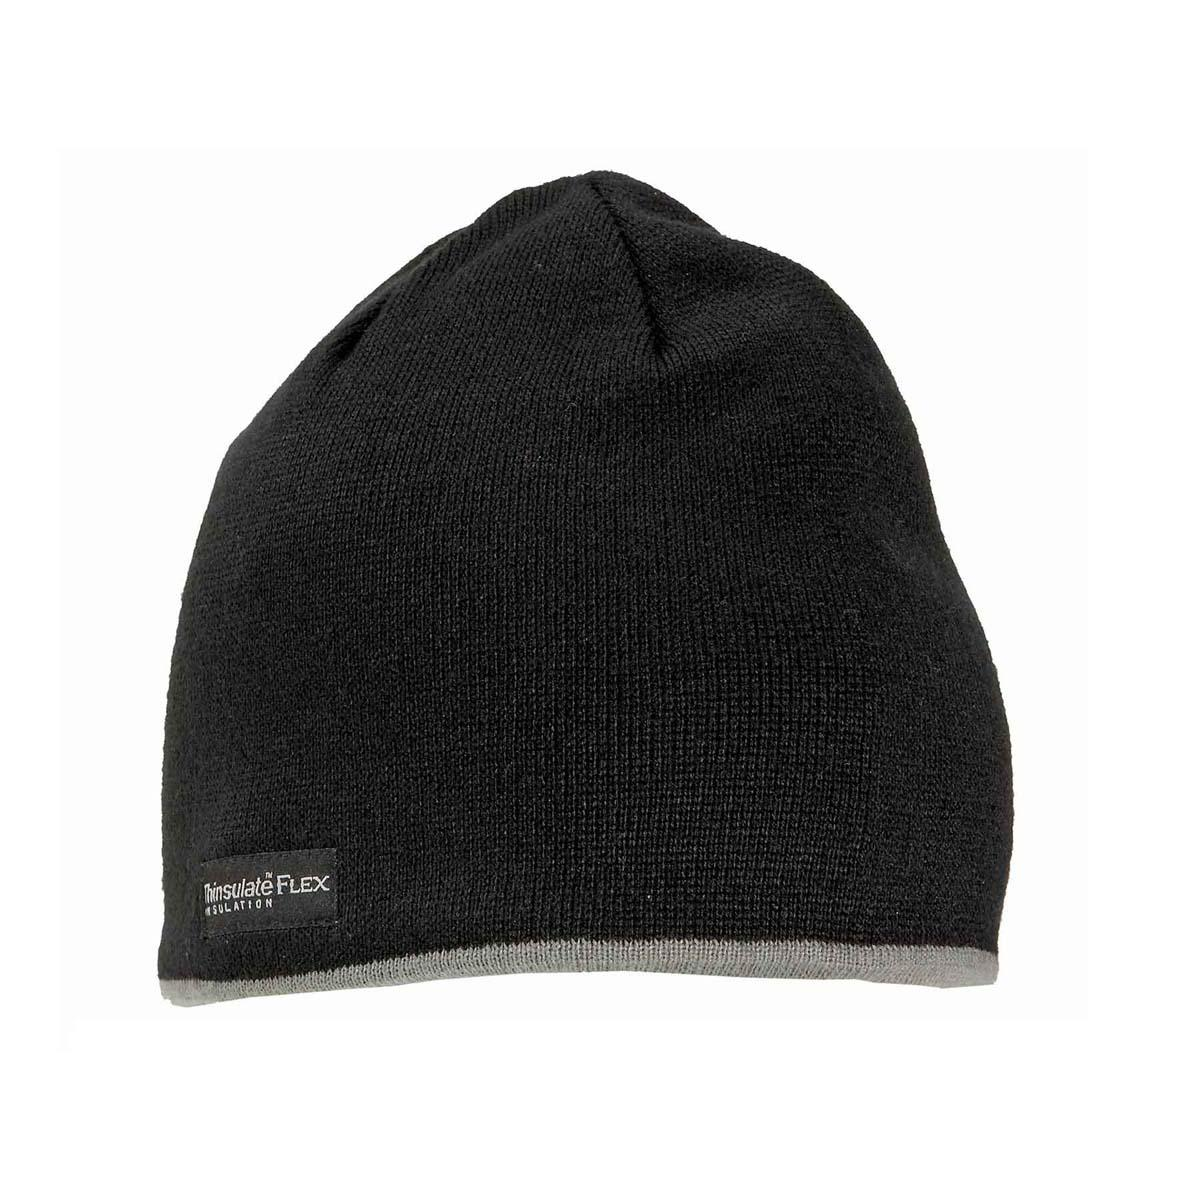 6818  Black Knit Cap